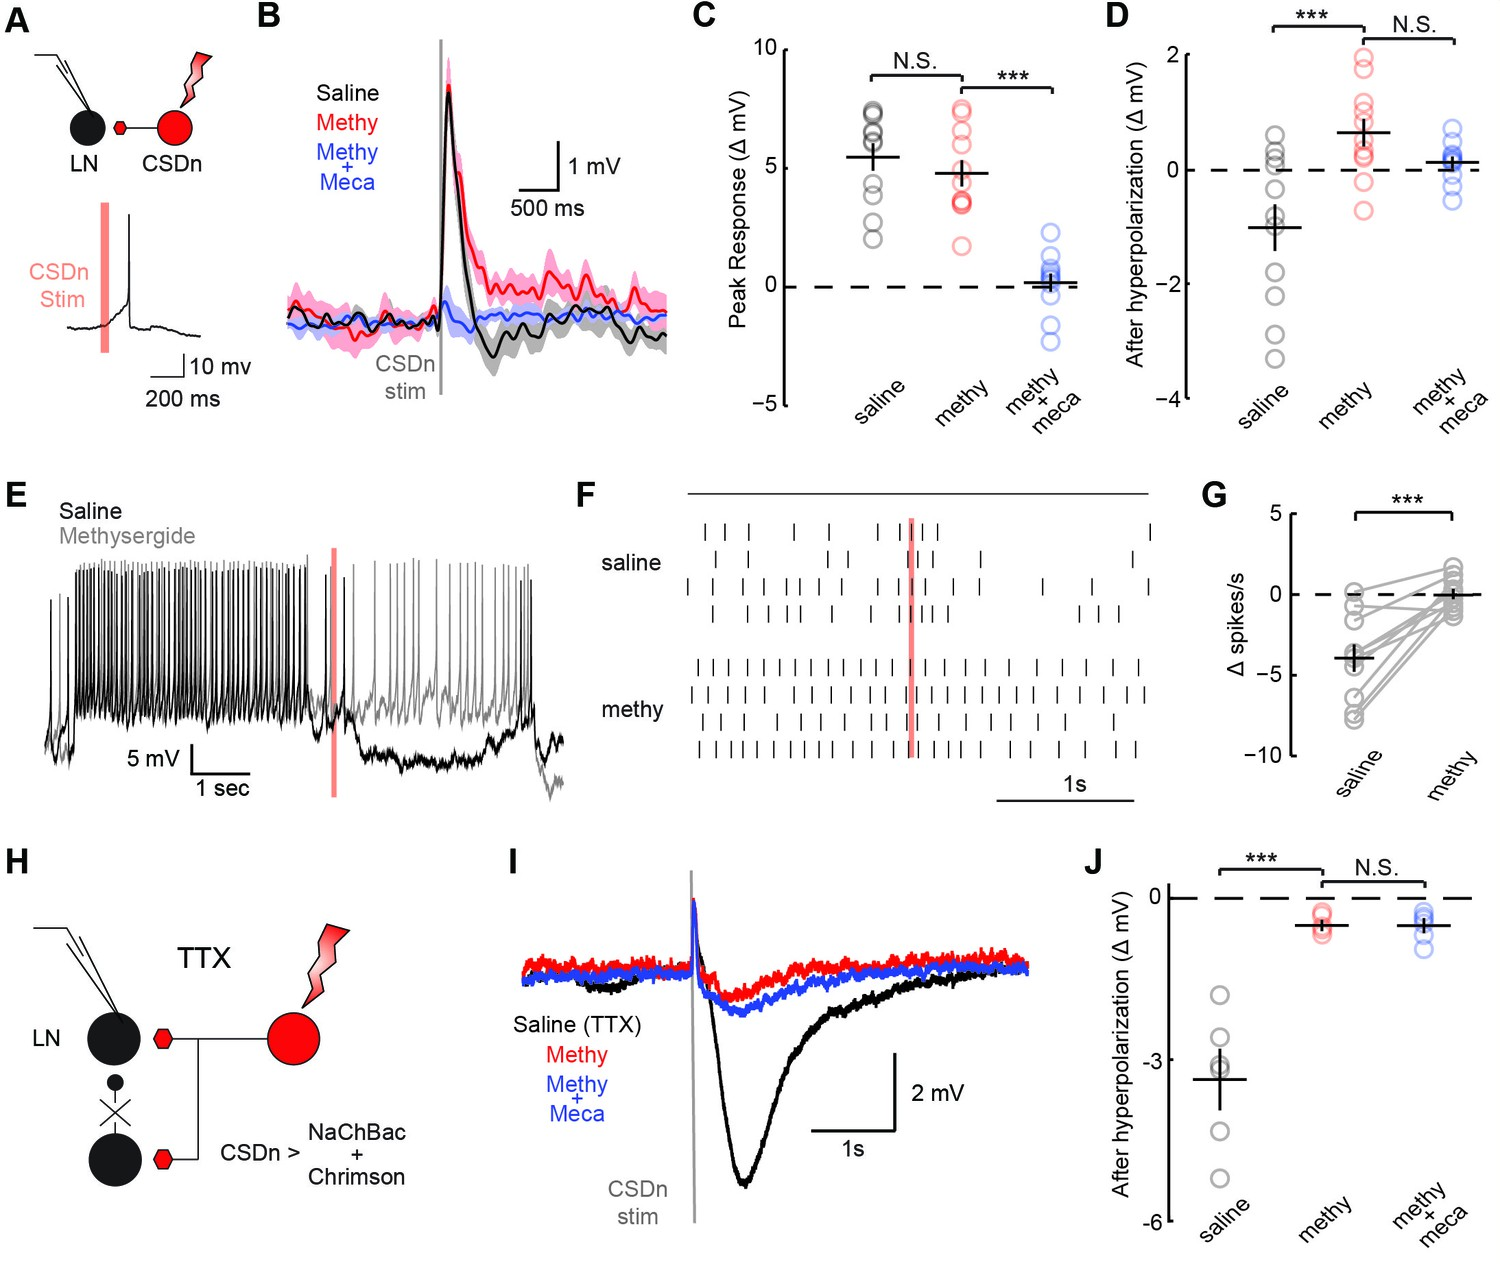 Functional Integration Of A Serotonergic Neuron In The Drosophila Data Logger Hall Effect Sensor Circuit Diagram Logo Iglesia Adventista Csdn Stimulation Monosynaptically Inhibits Lns And Polysynaptically Excites Them